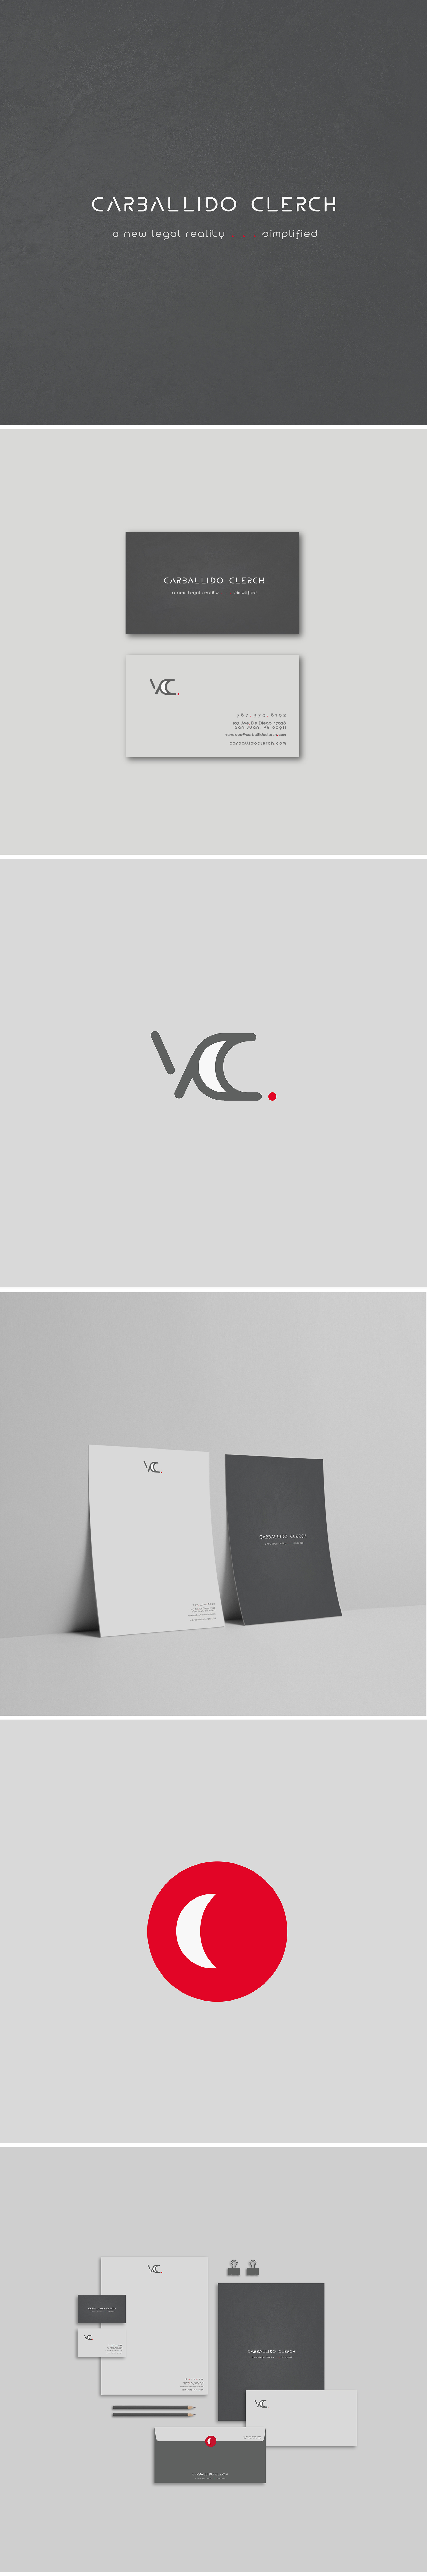 brand identity, print collateral